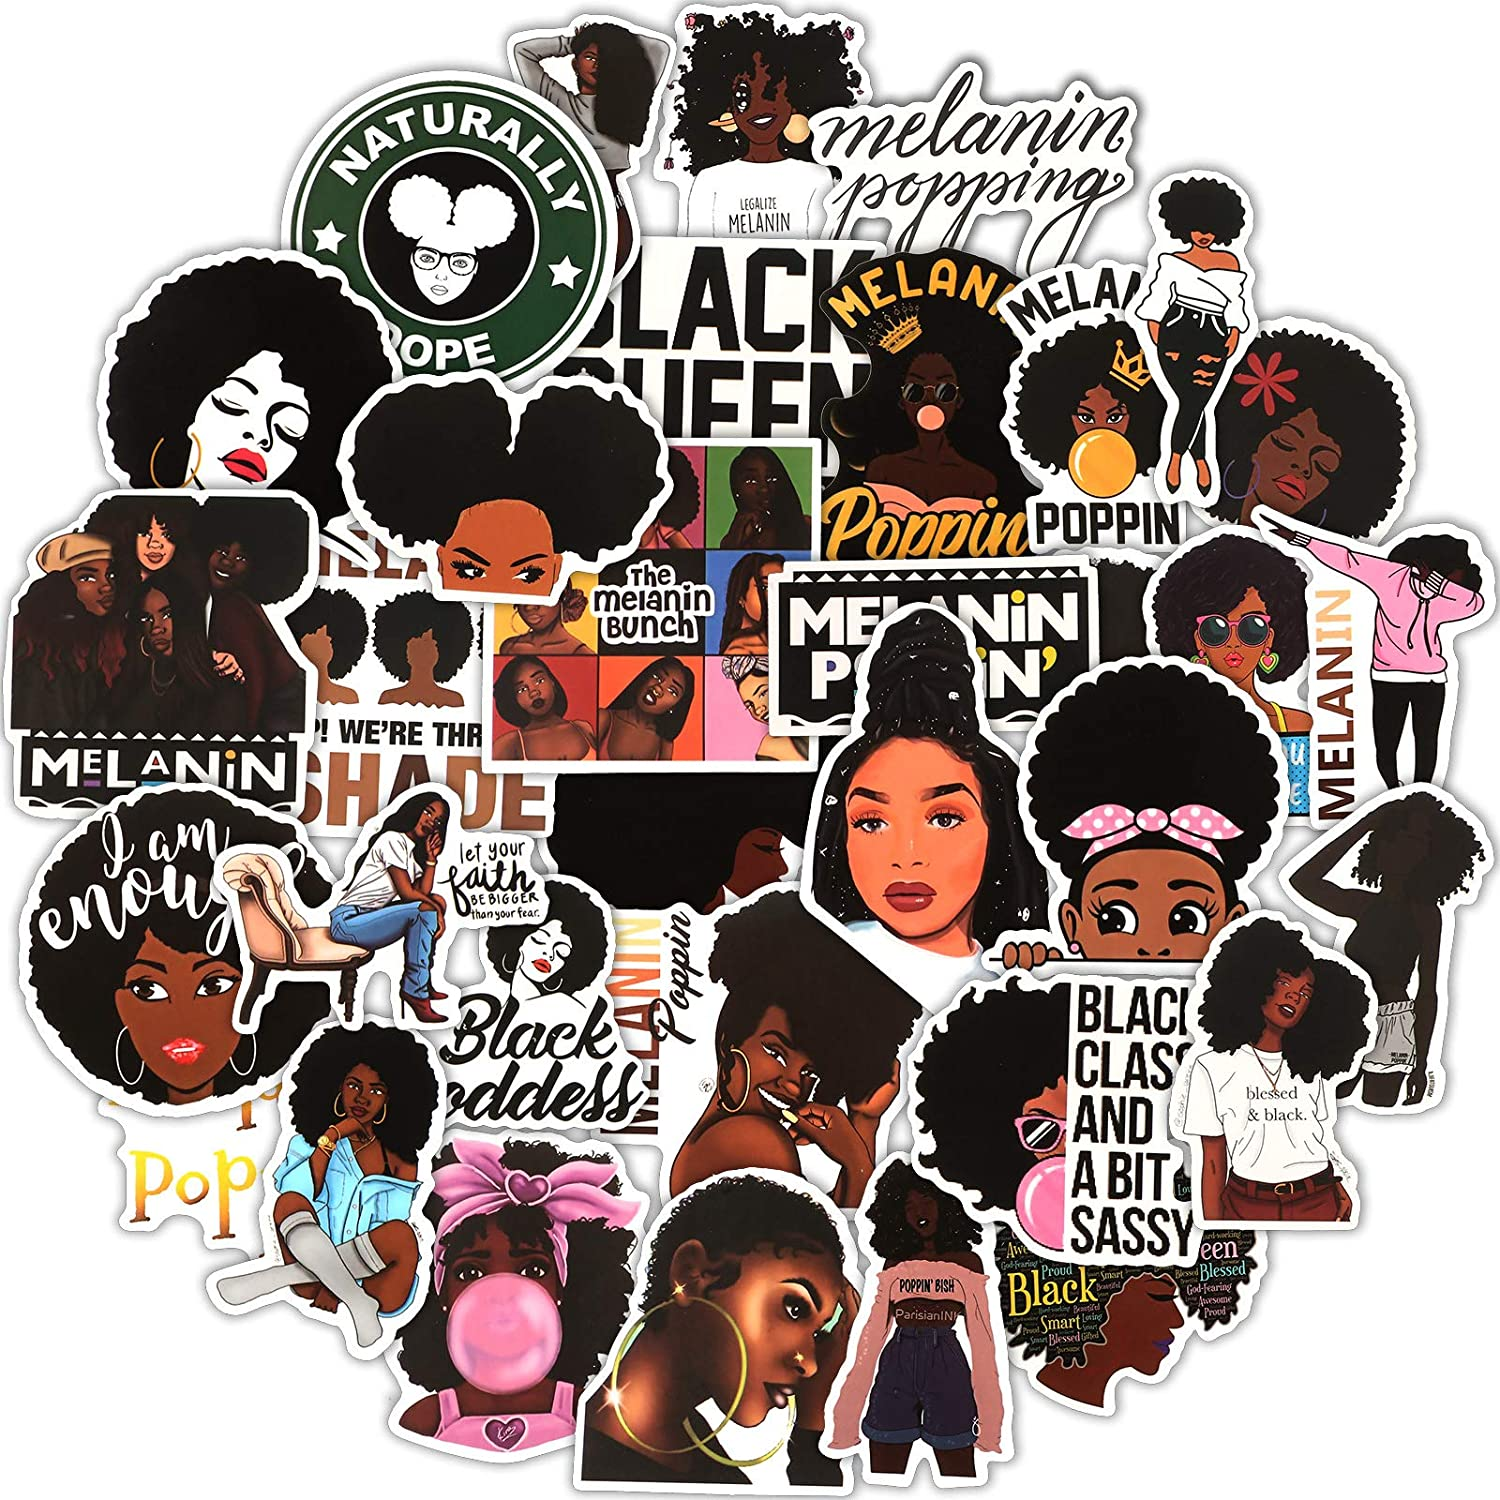 100 Pieces Melanin Poppin Stickers Black Girl Pop Singer Computer Decal for Laptop Water Bottles Skateboard Graffiti Patches, Durable Trendy Waterproof Vinyl Stickers for Teens